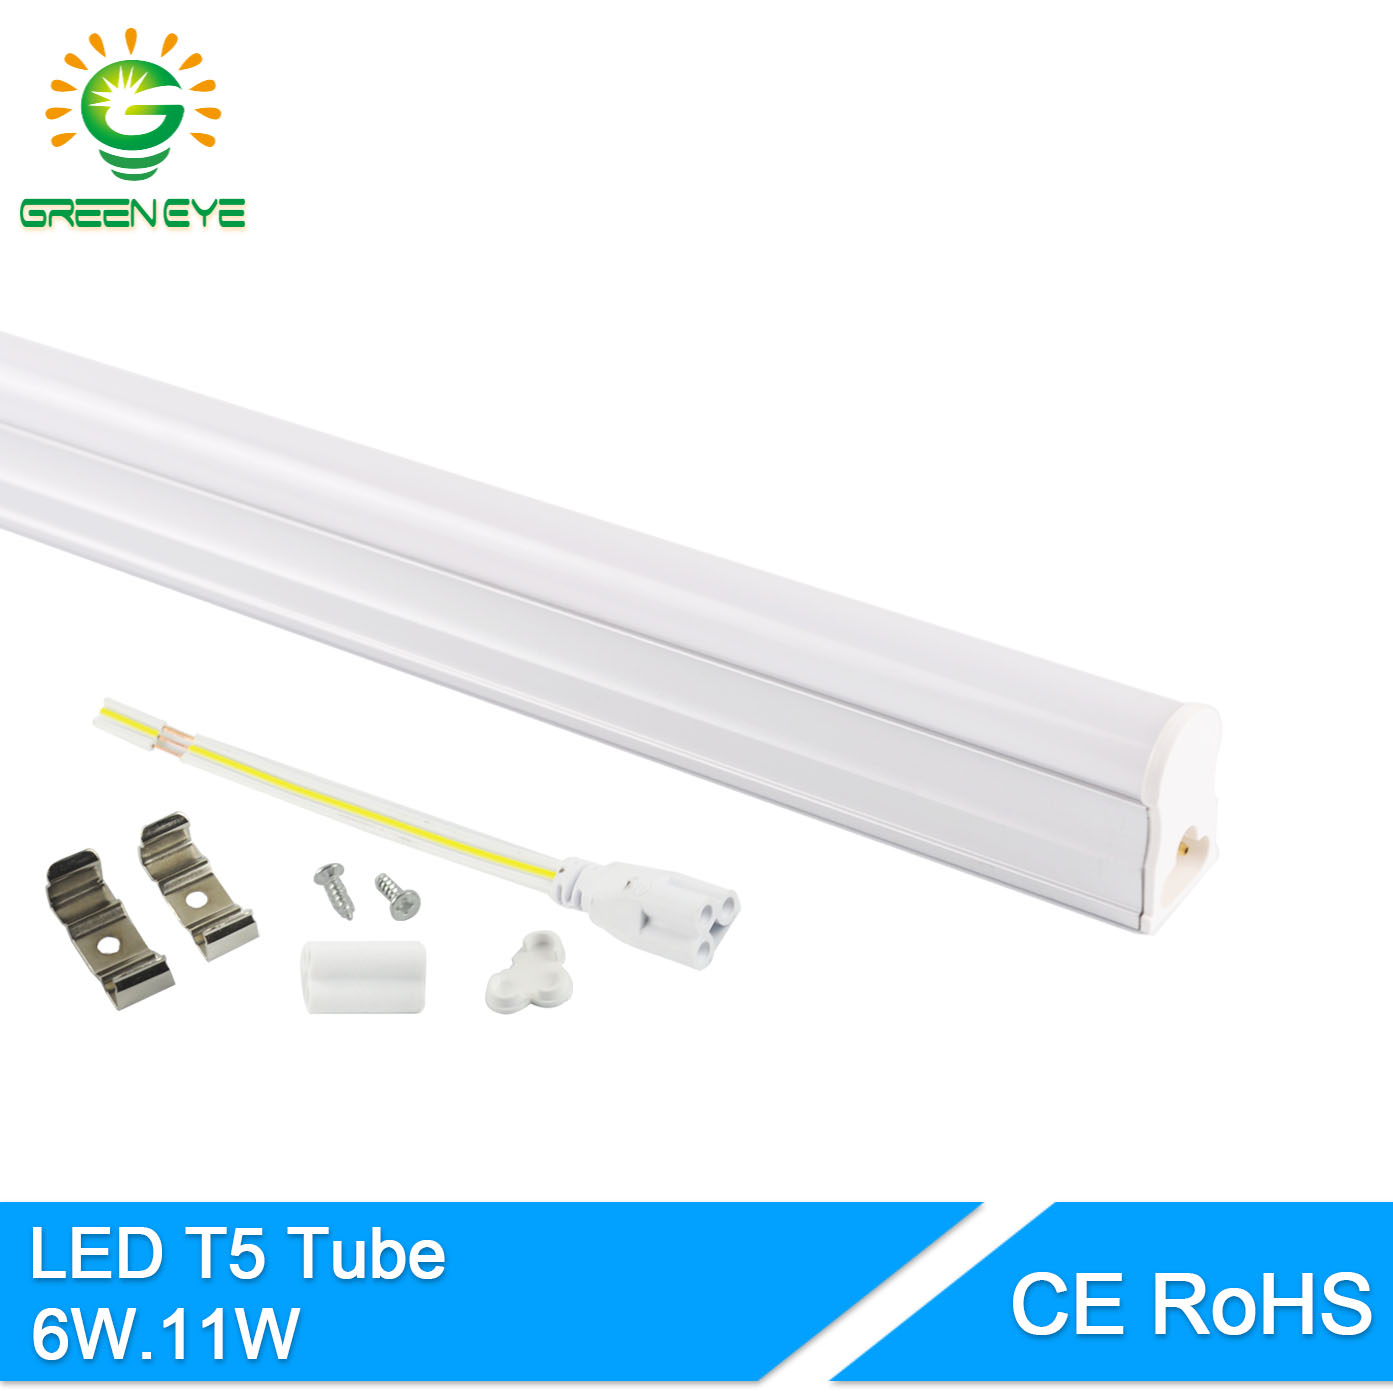 GreenEye 11W 6W LED T5 Tube Light 220V 60cm 30cm T5 lamp led wall lamp Warm Cold White led fluorescent light T5 neon 1Feet 2Feet(China)